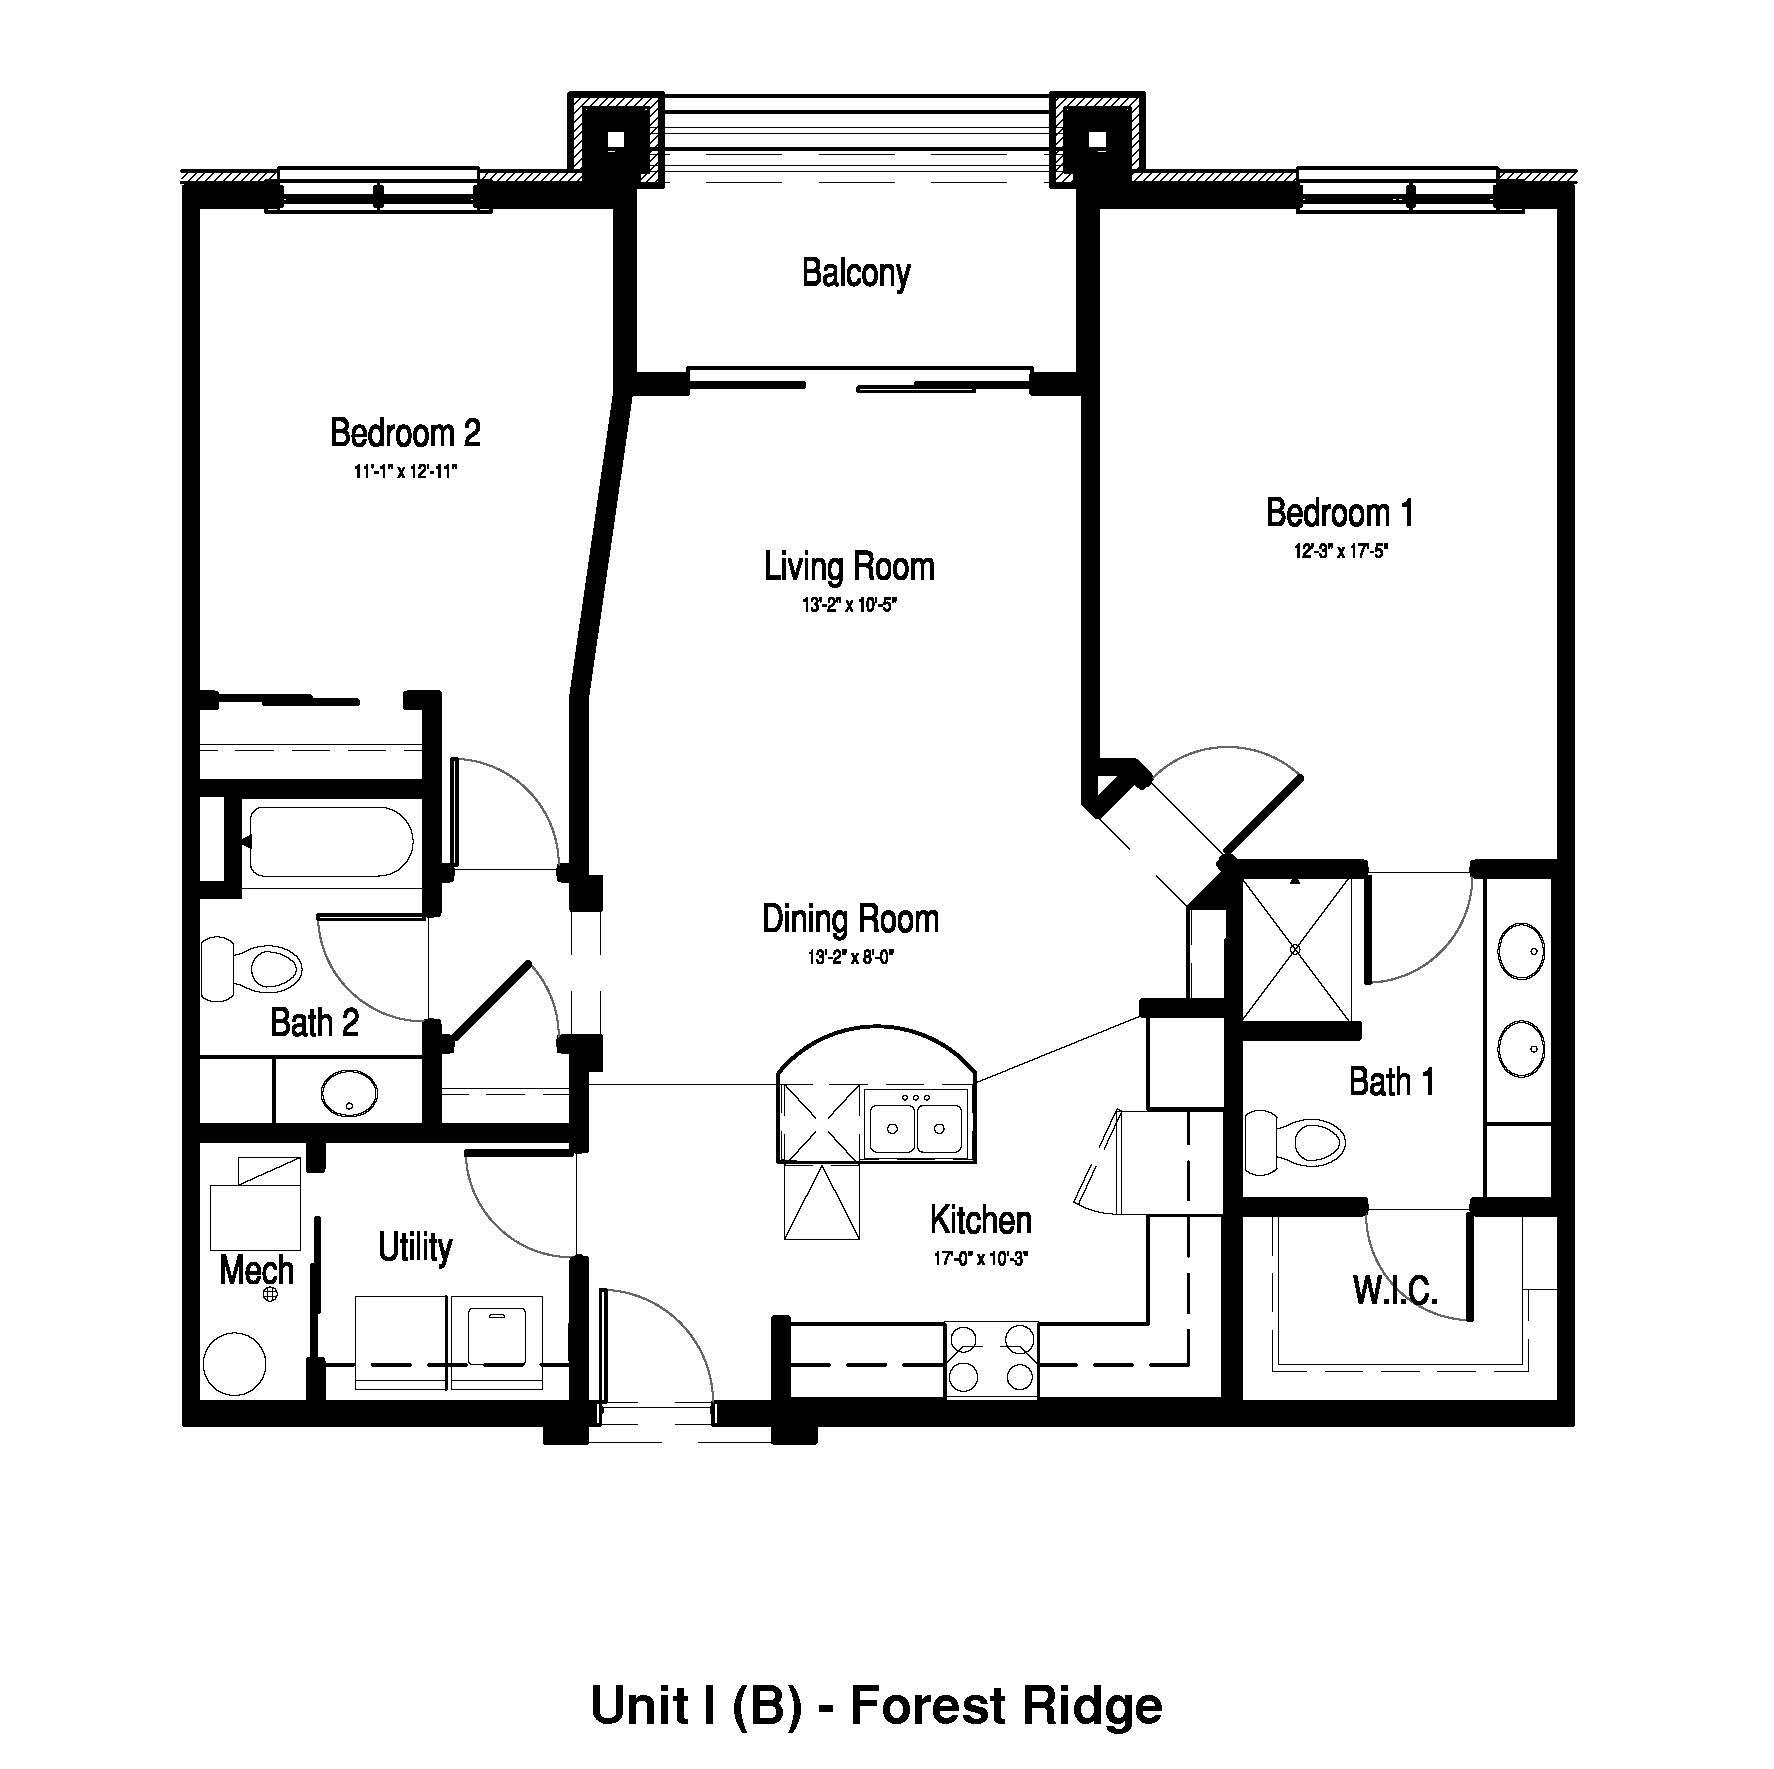 2 Bedroom, 2 Bath - 1,164 Sq. Ft. - Forest Ridge Expansion